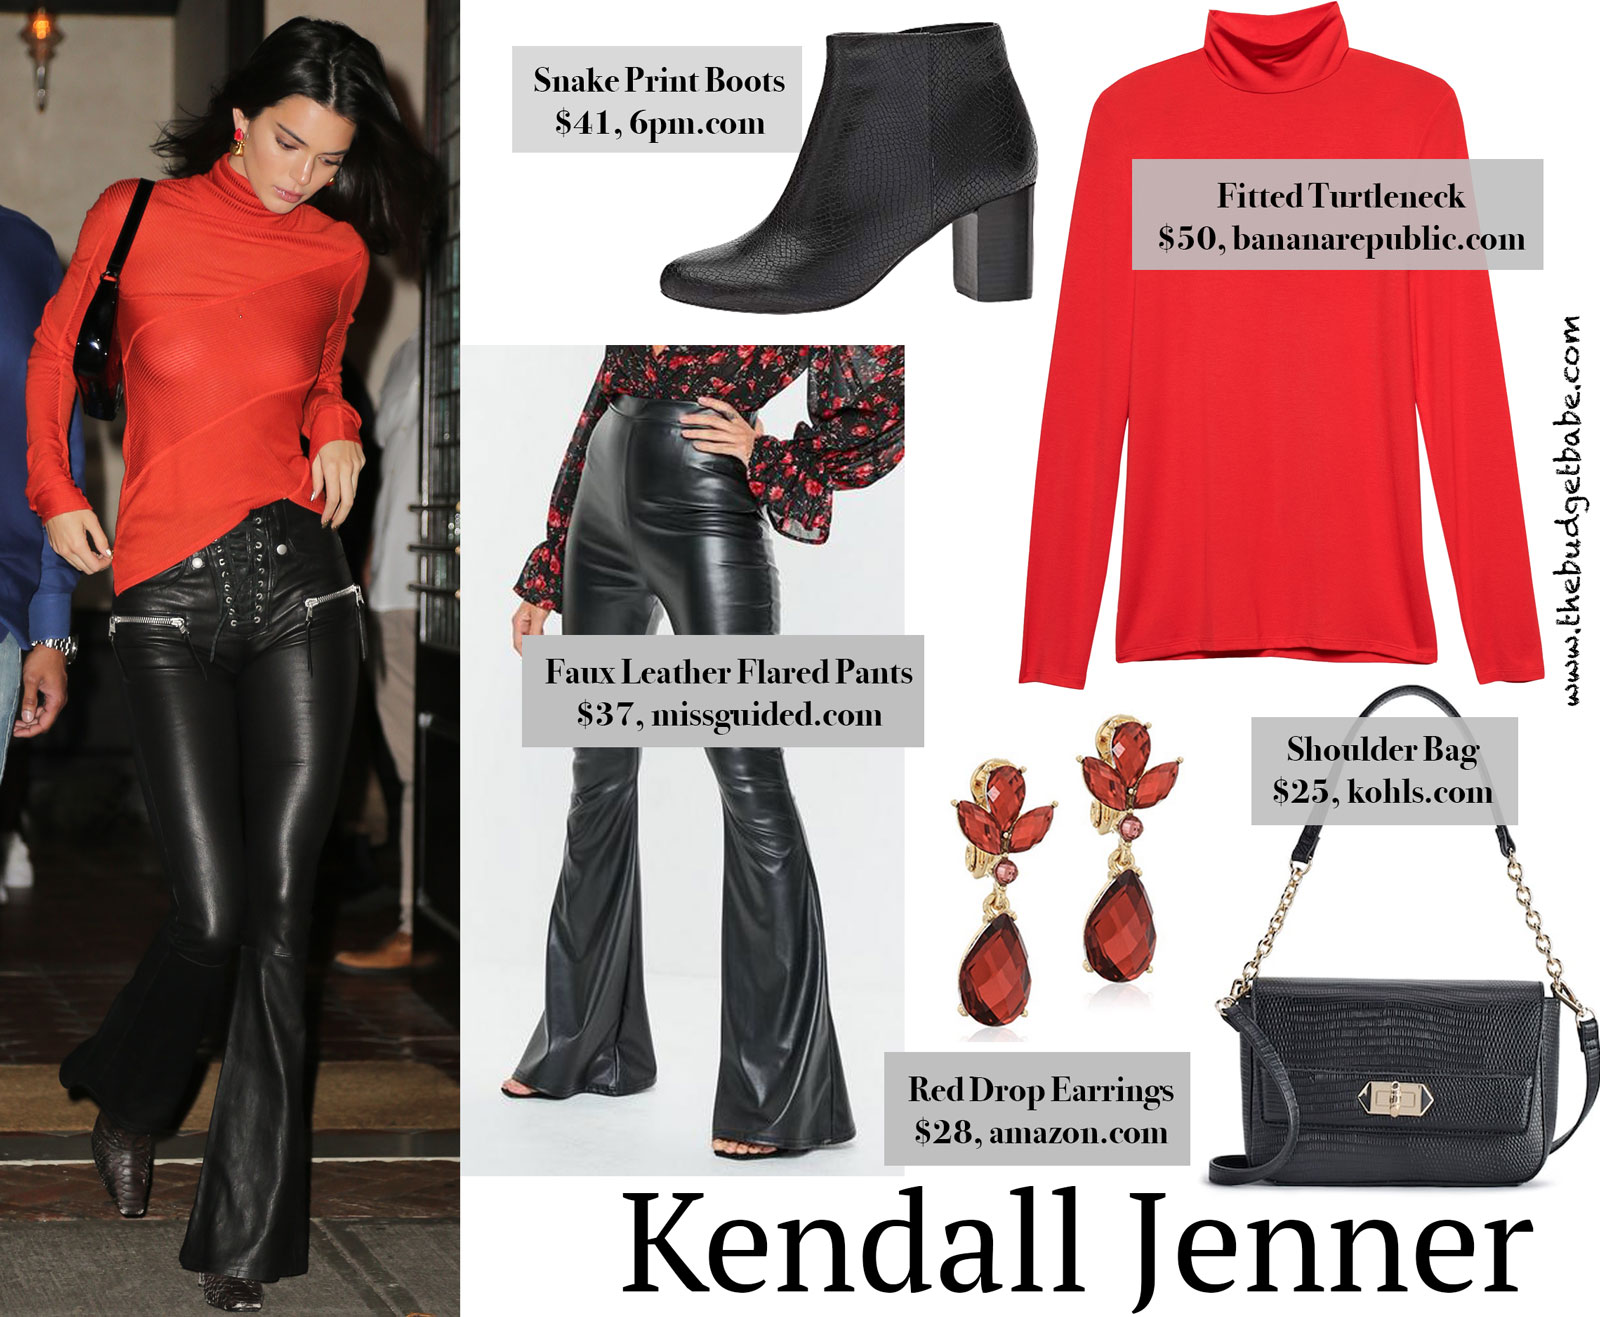 Kendall Jenner Red Turtleneck Look for Less